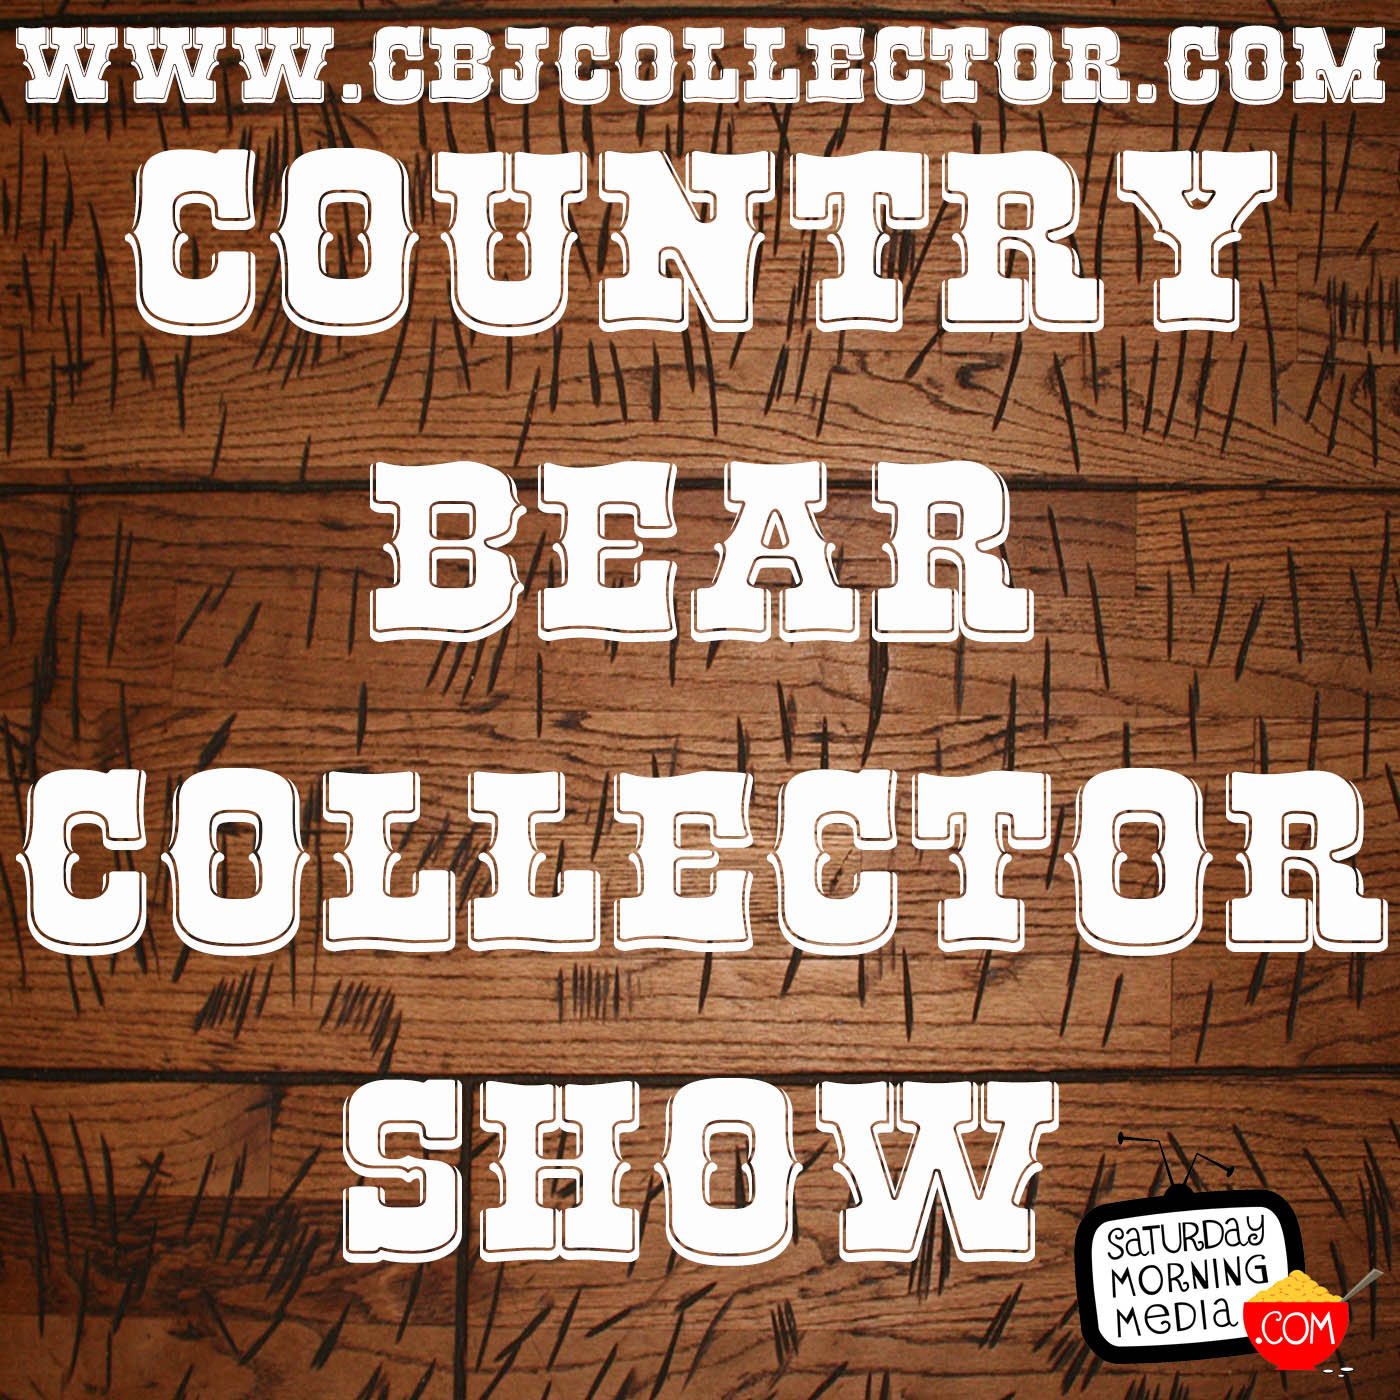 Artwork for Framed Photo from Disneyland Country Bear Jamboree Queue w/ Freckled Princess - Country Bear Collector 139